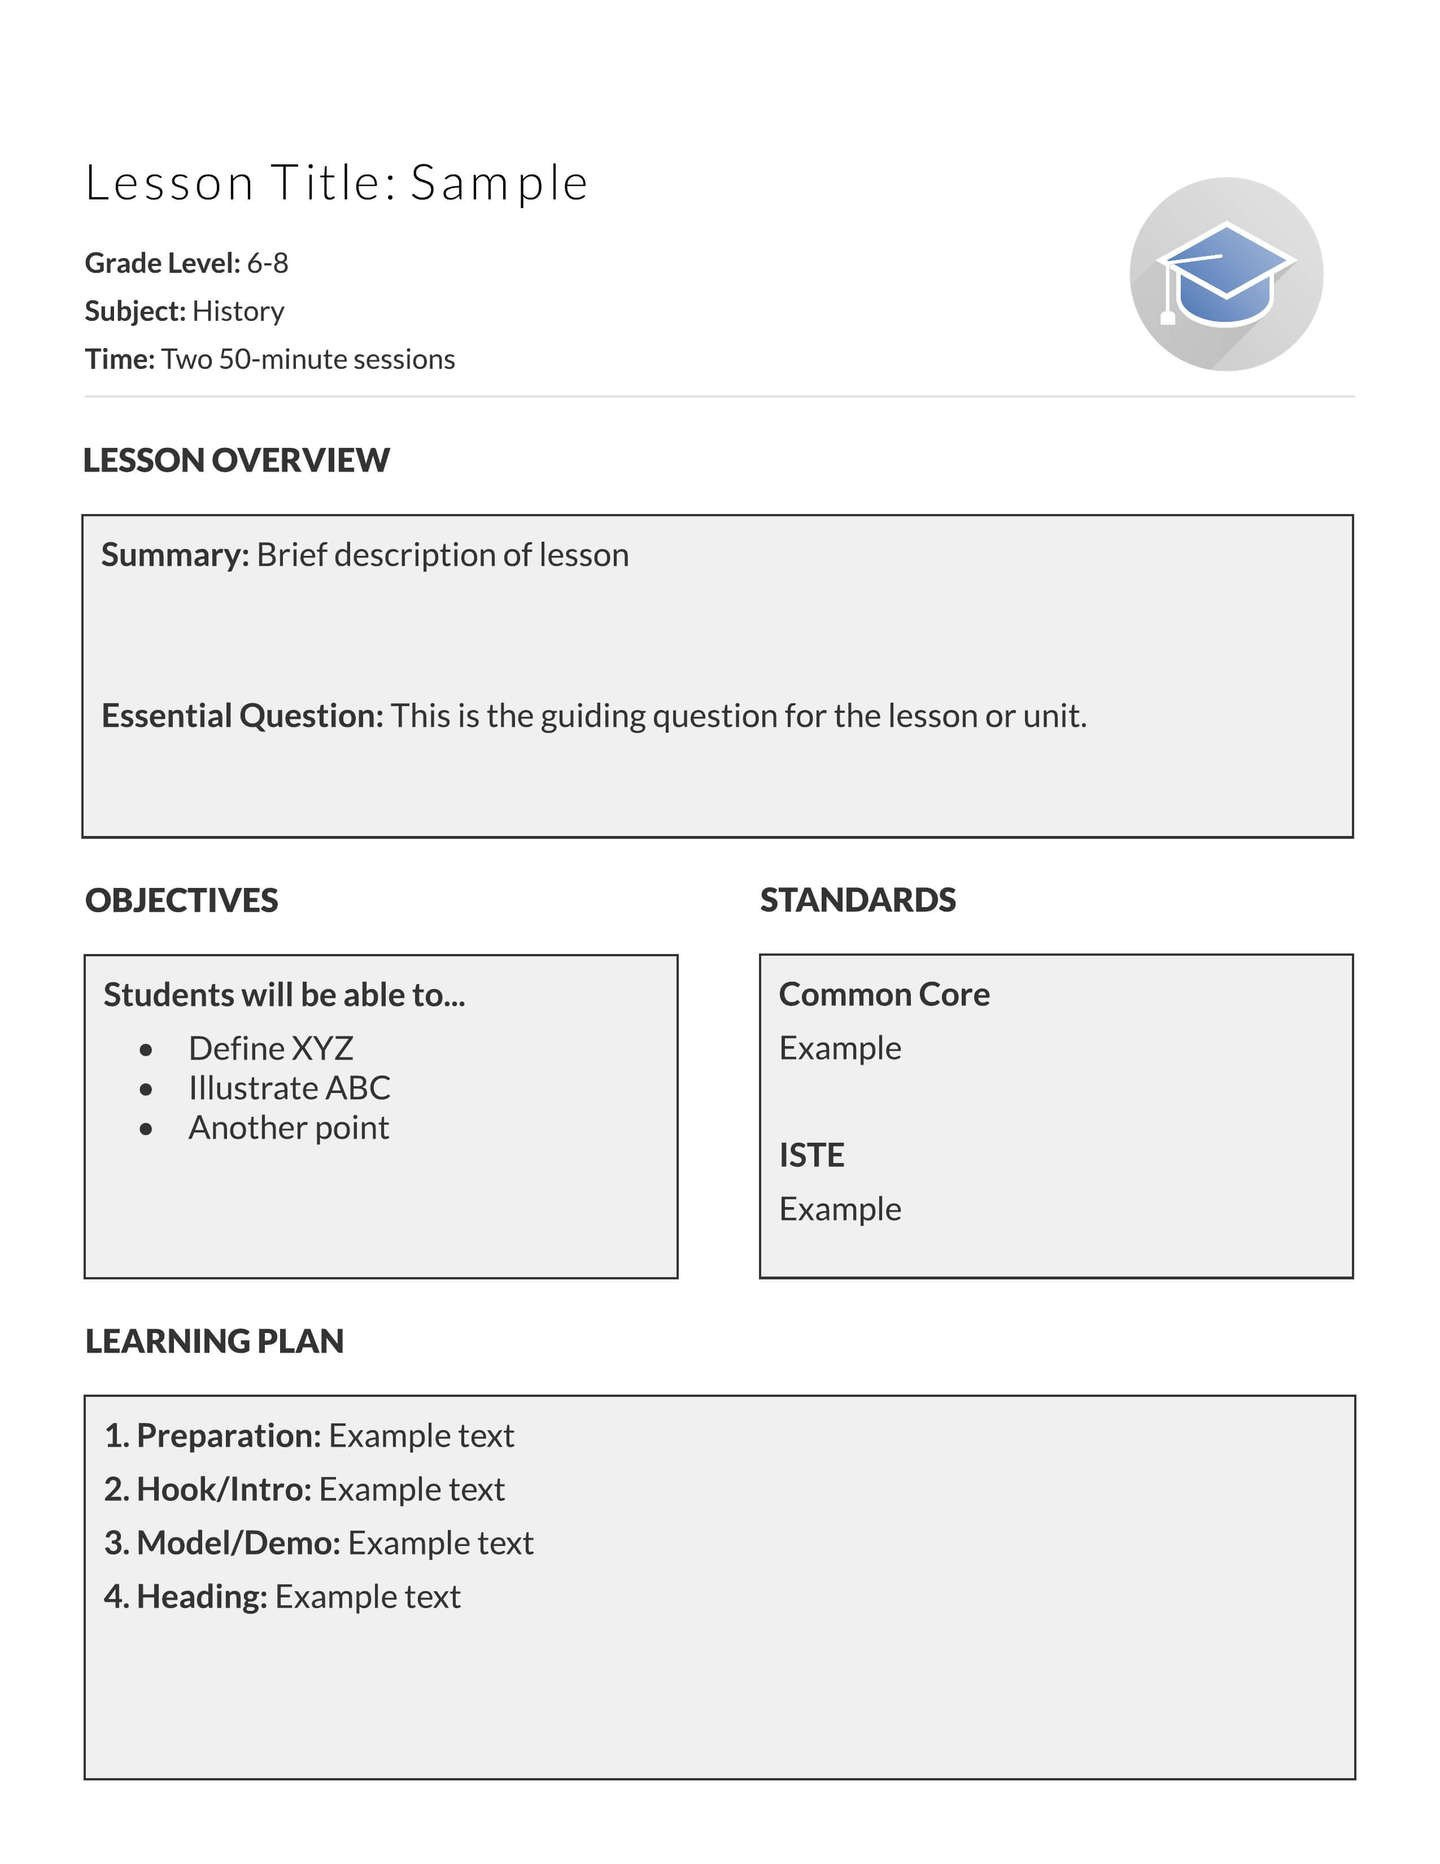 Lesson Plans Templates Free 5 Free Lesson Plan Templates & Examples Lucidpress